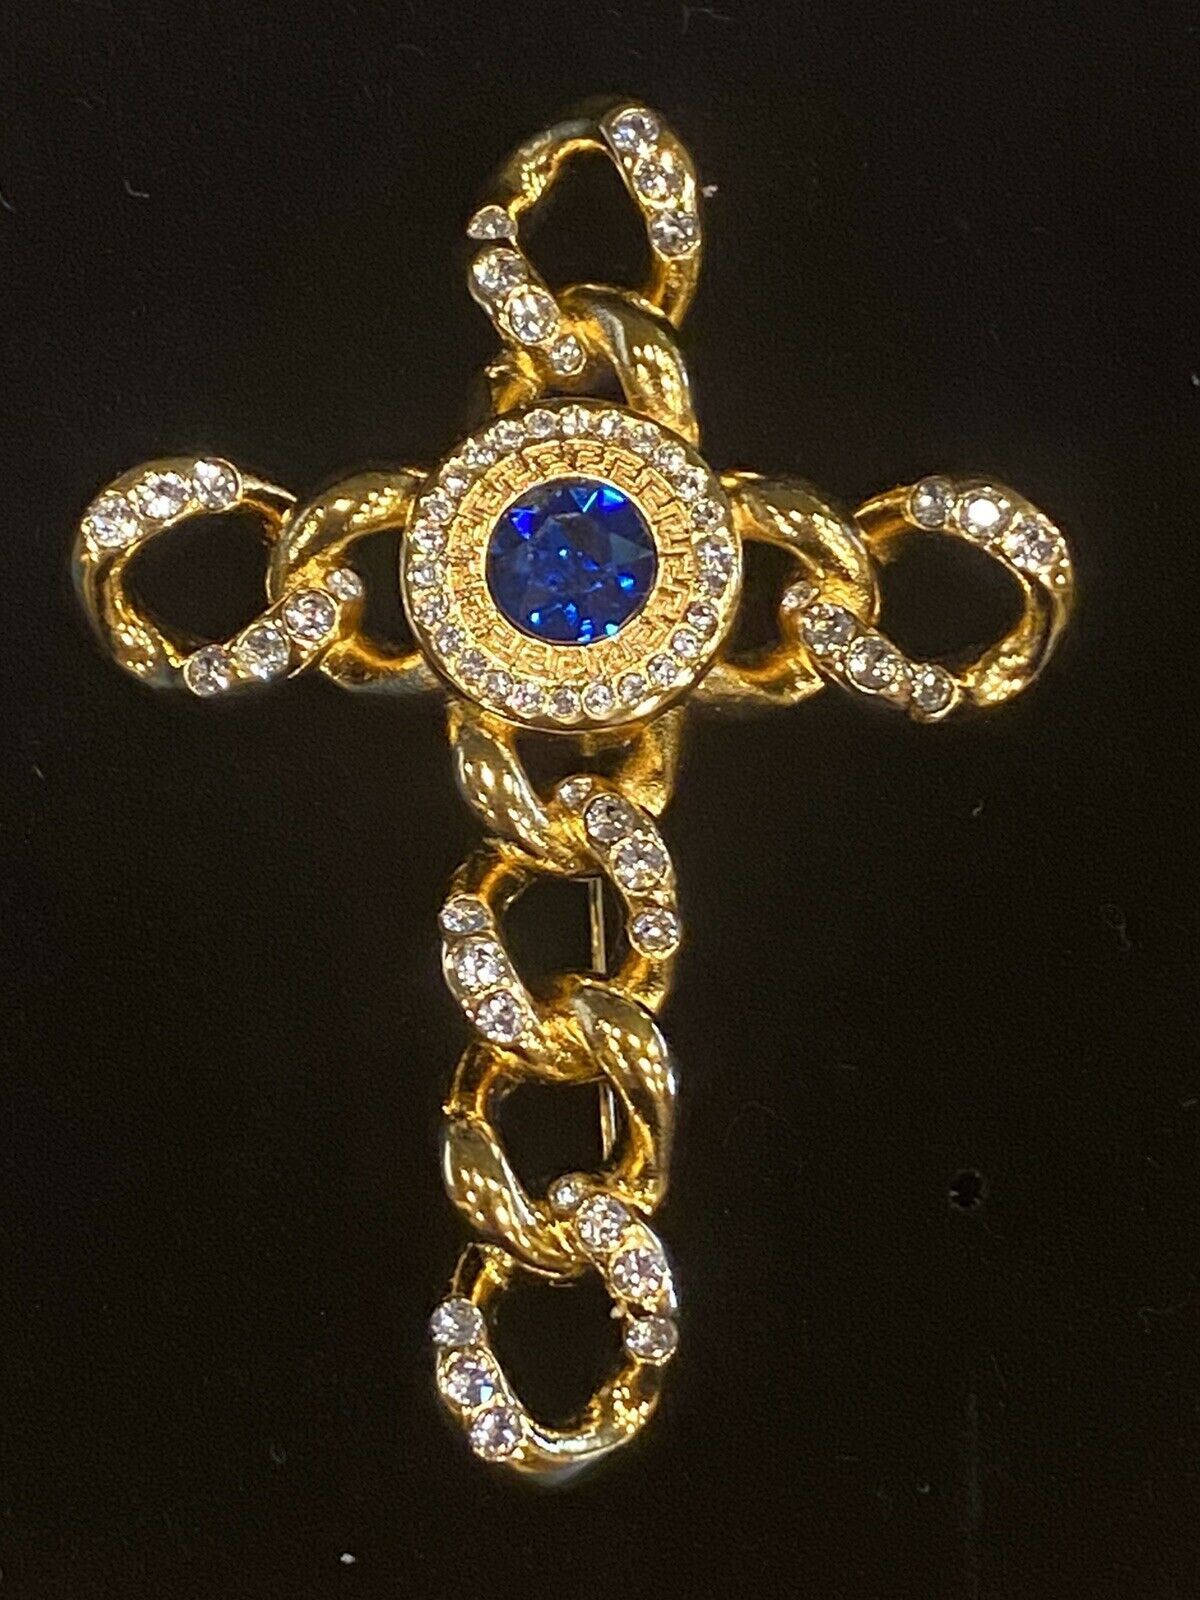 SIGNED VINTAGE GOLD PLATED GIANNI VERSACE CRYSTAL… - image 9